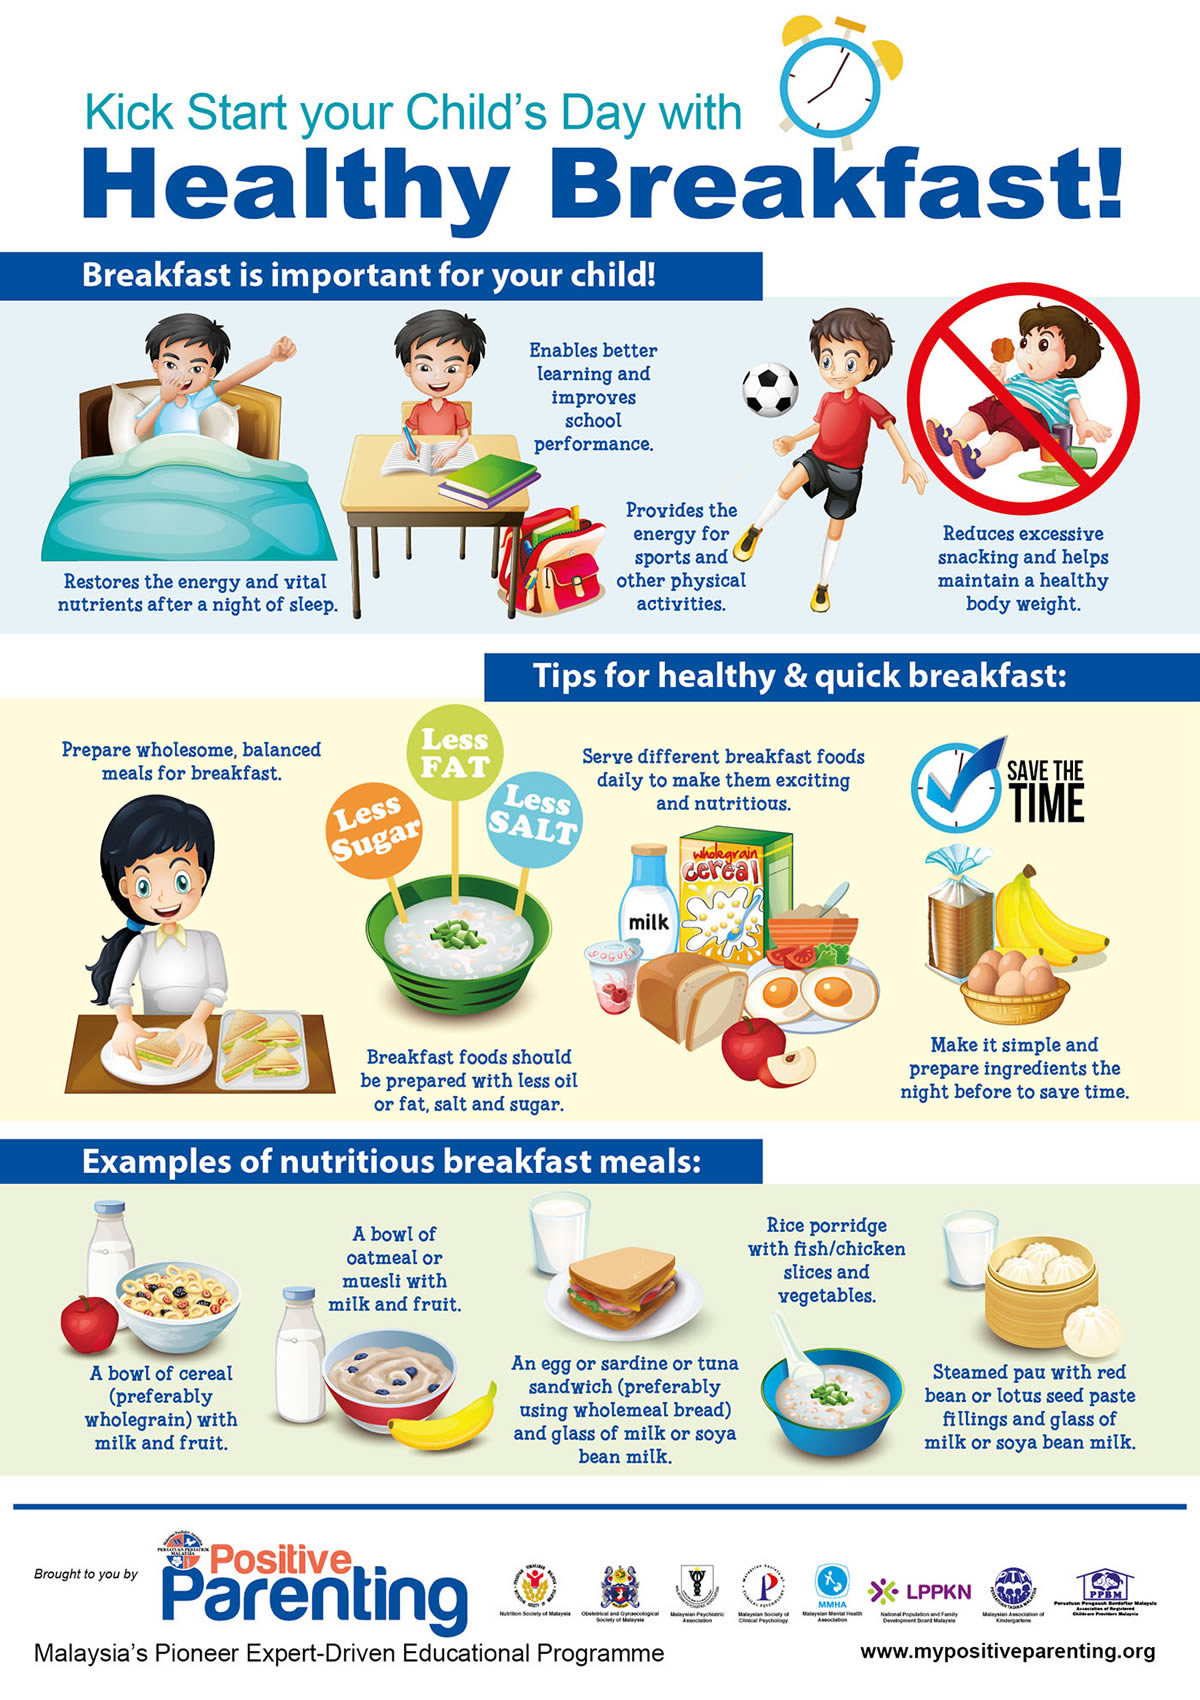 Kick Start your Child's Day with Healthy Breakfast ...